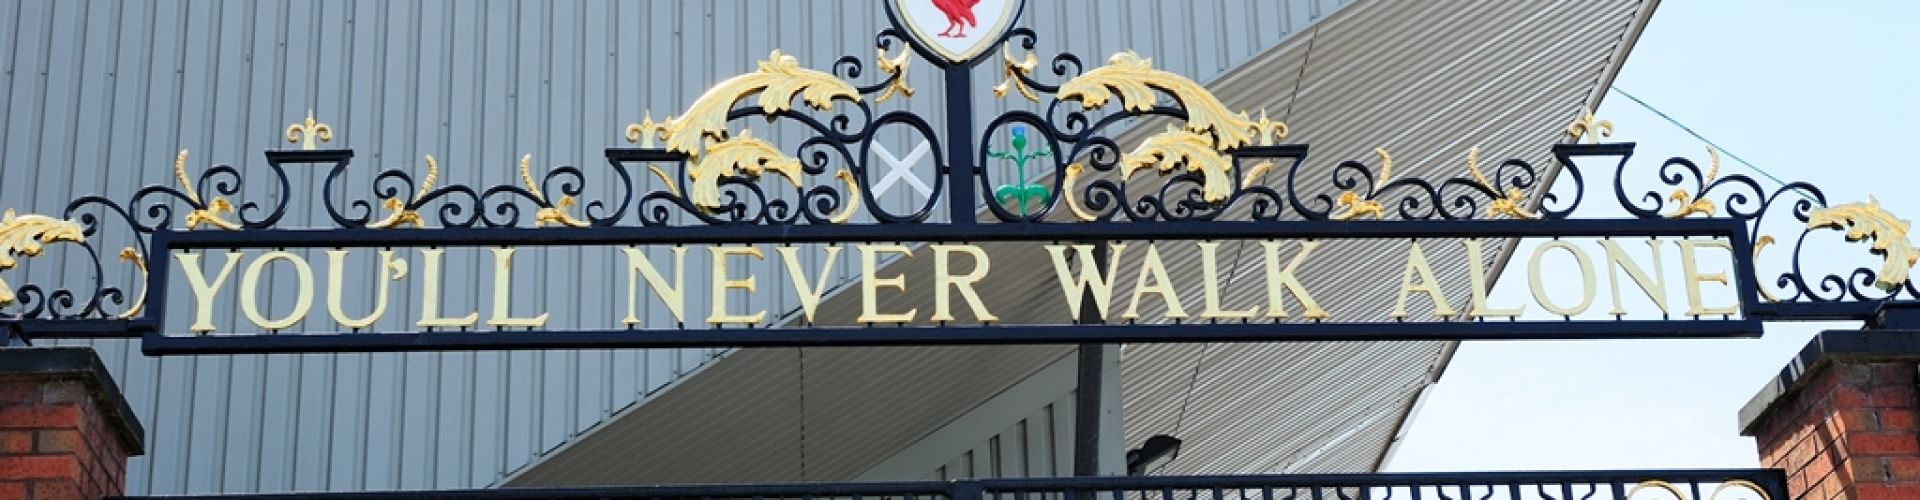 You'll Never Walk Alone Gate an der Anfield Road Liverpool